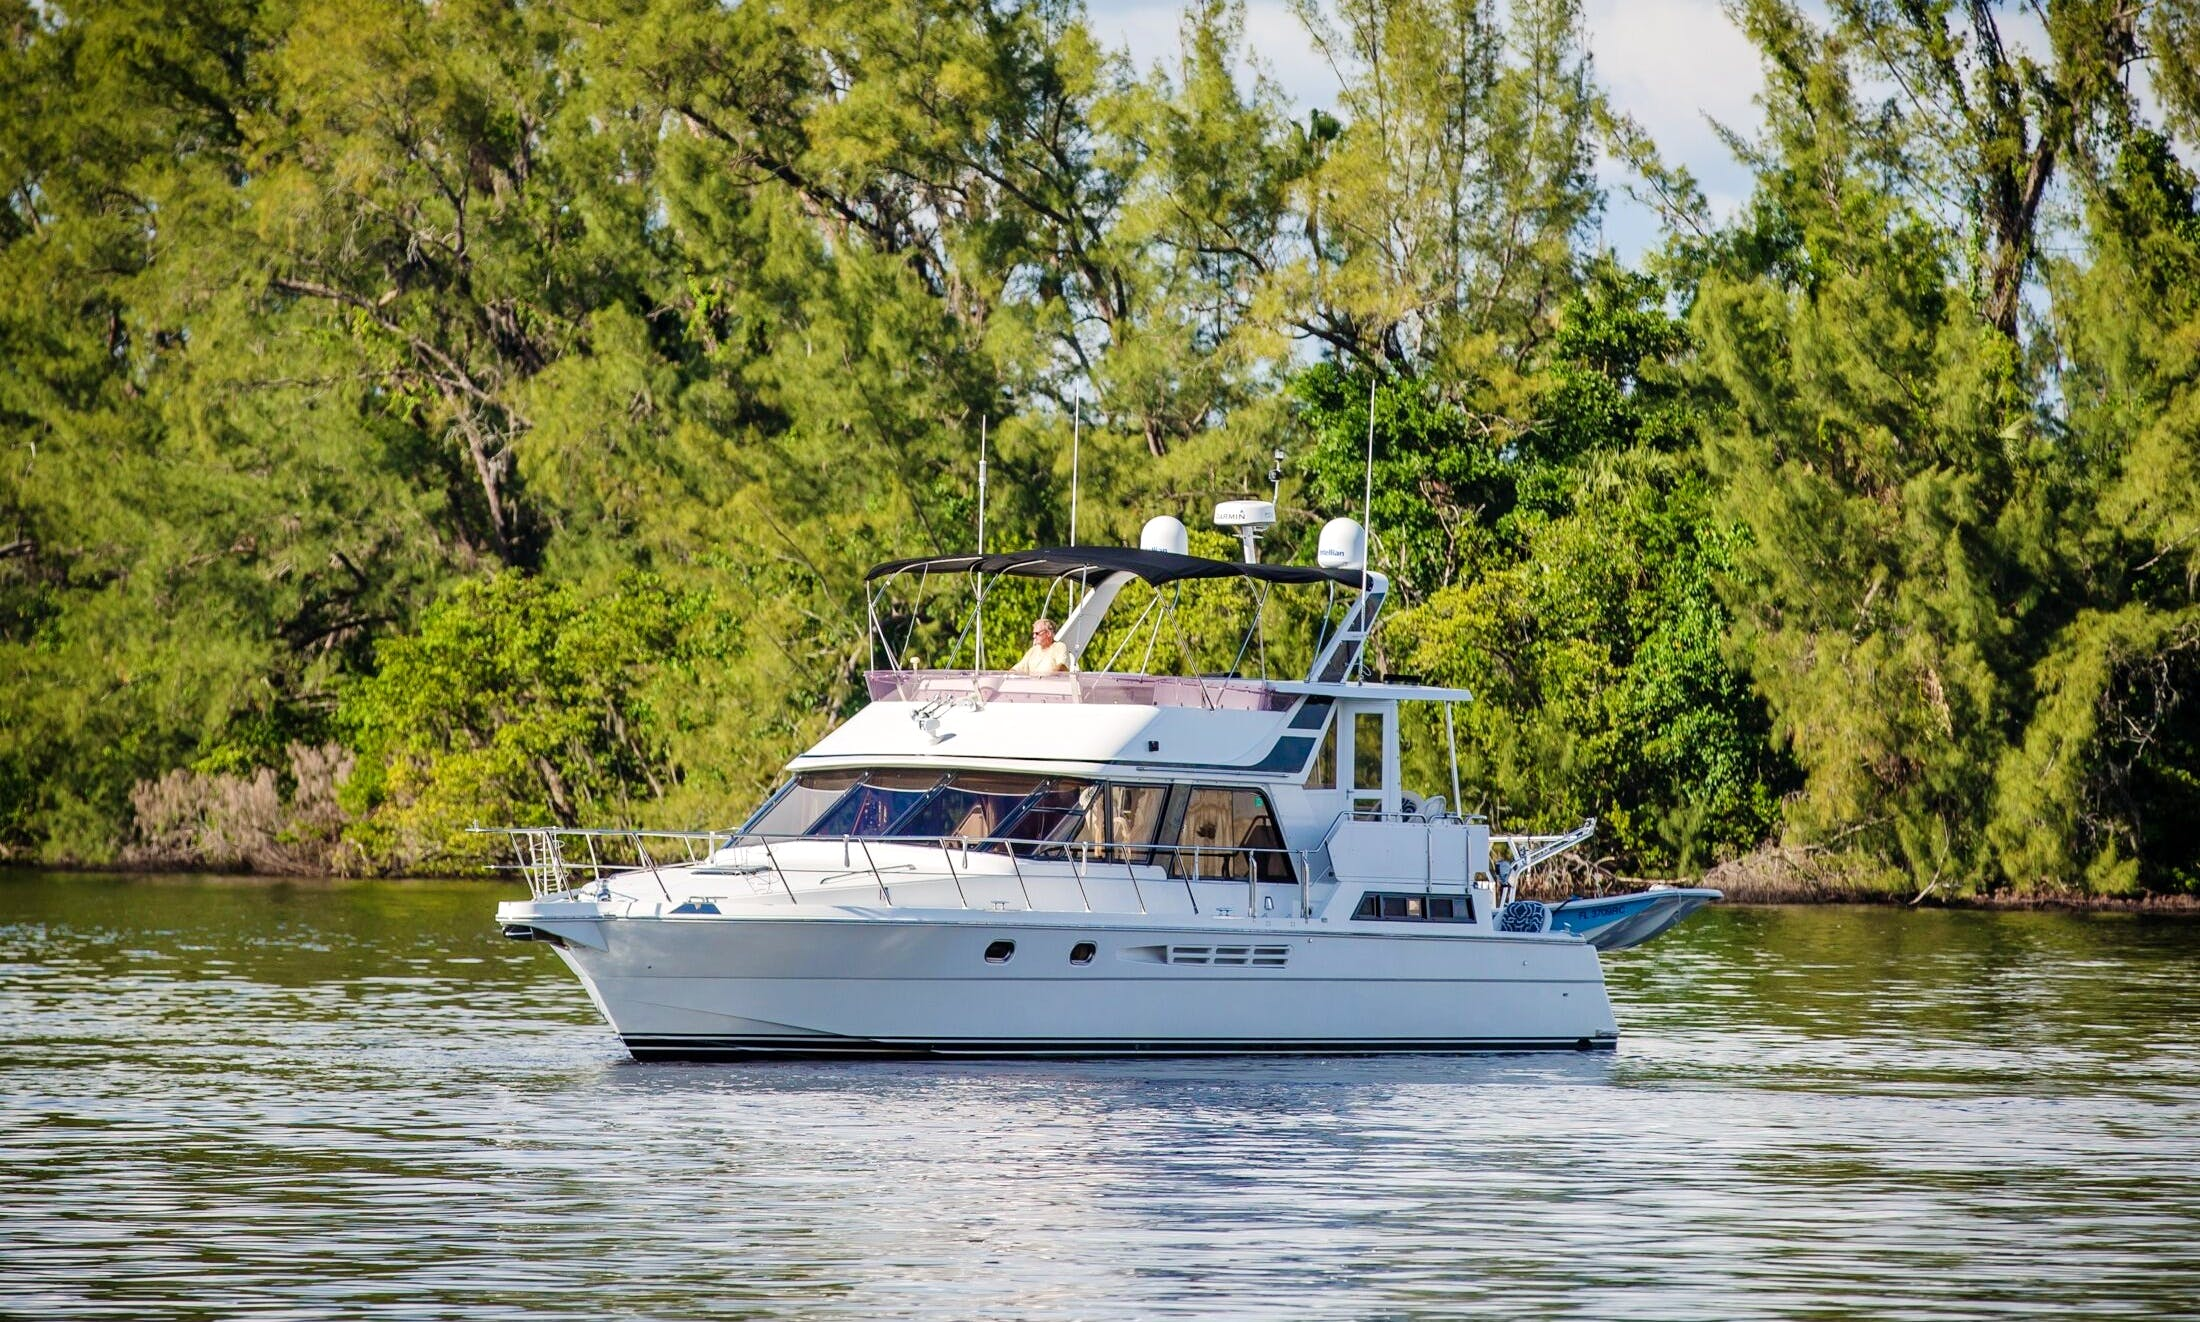 Motor Yacht rental in Fort Myers on Caloosahatchee River